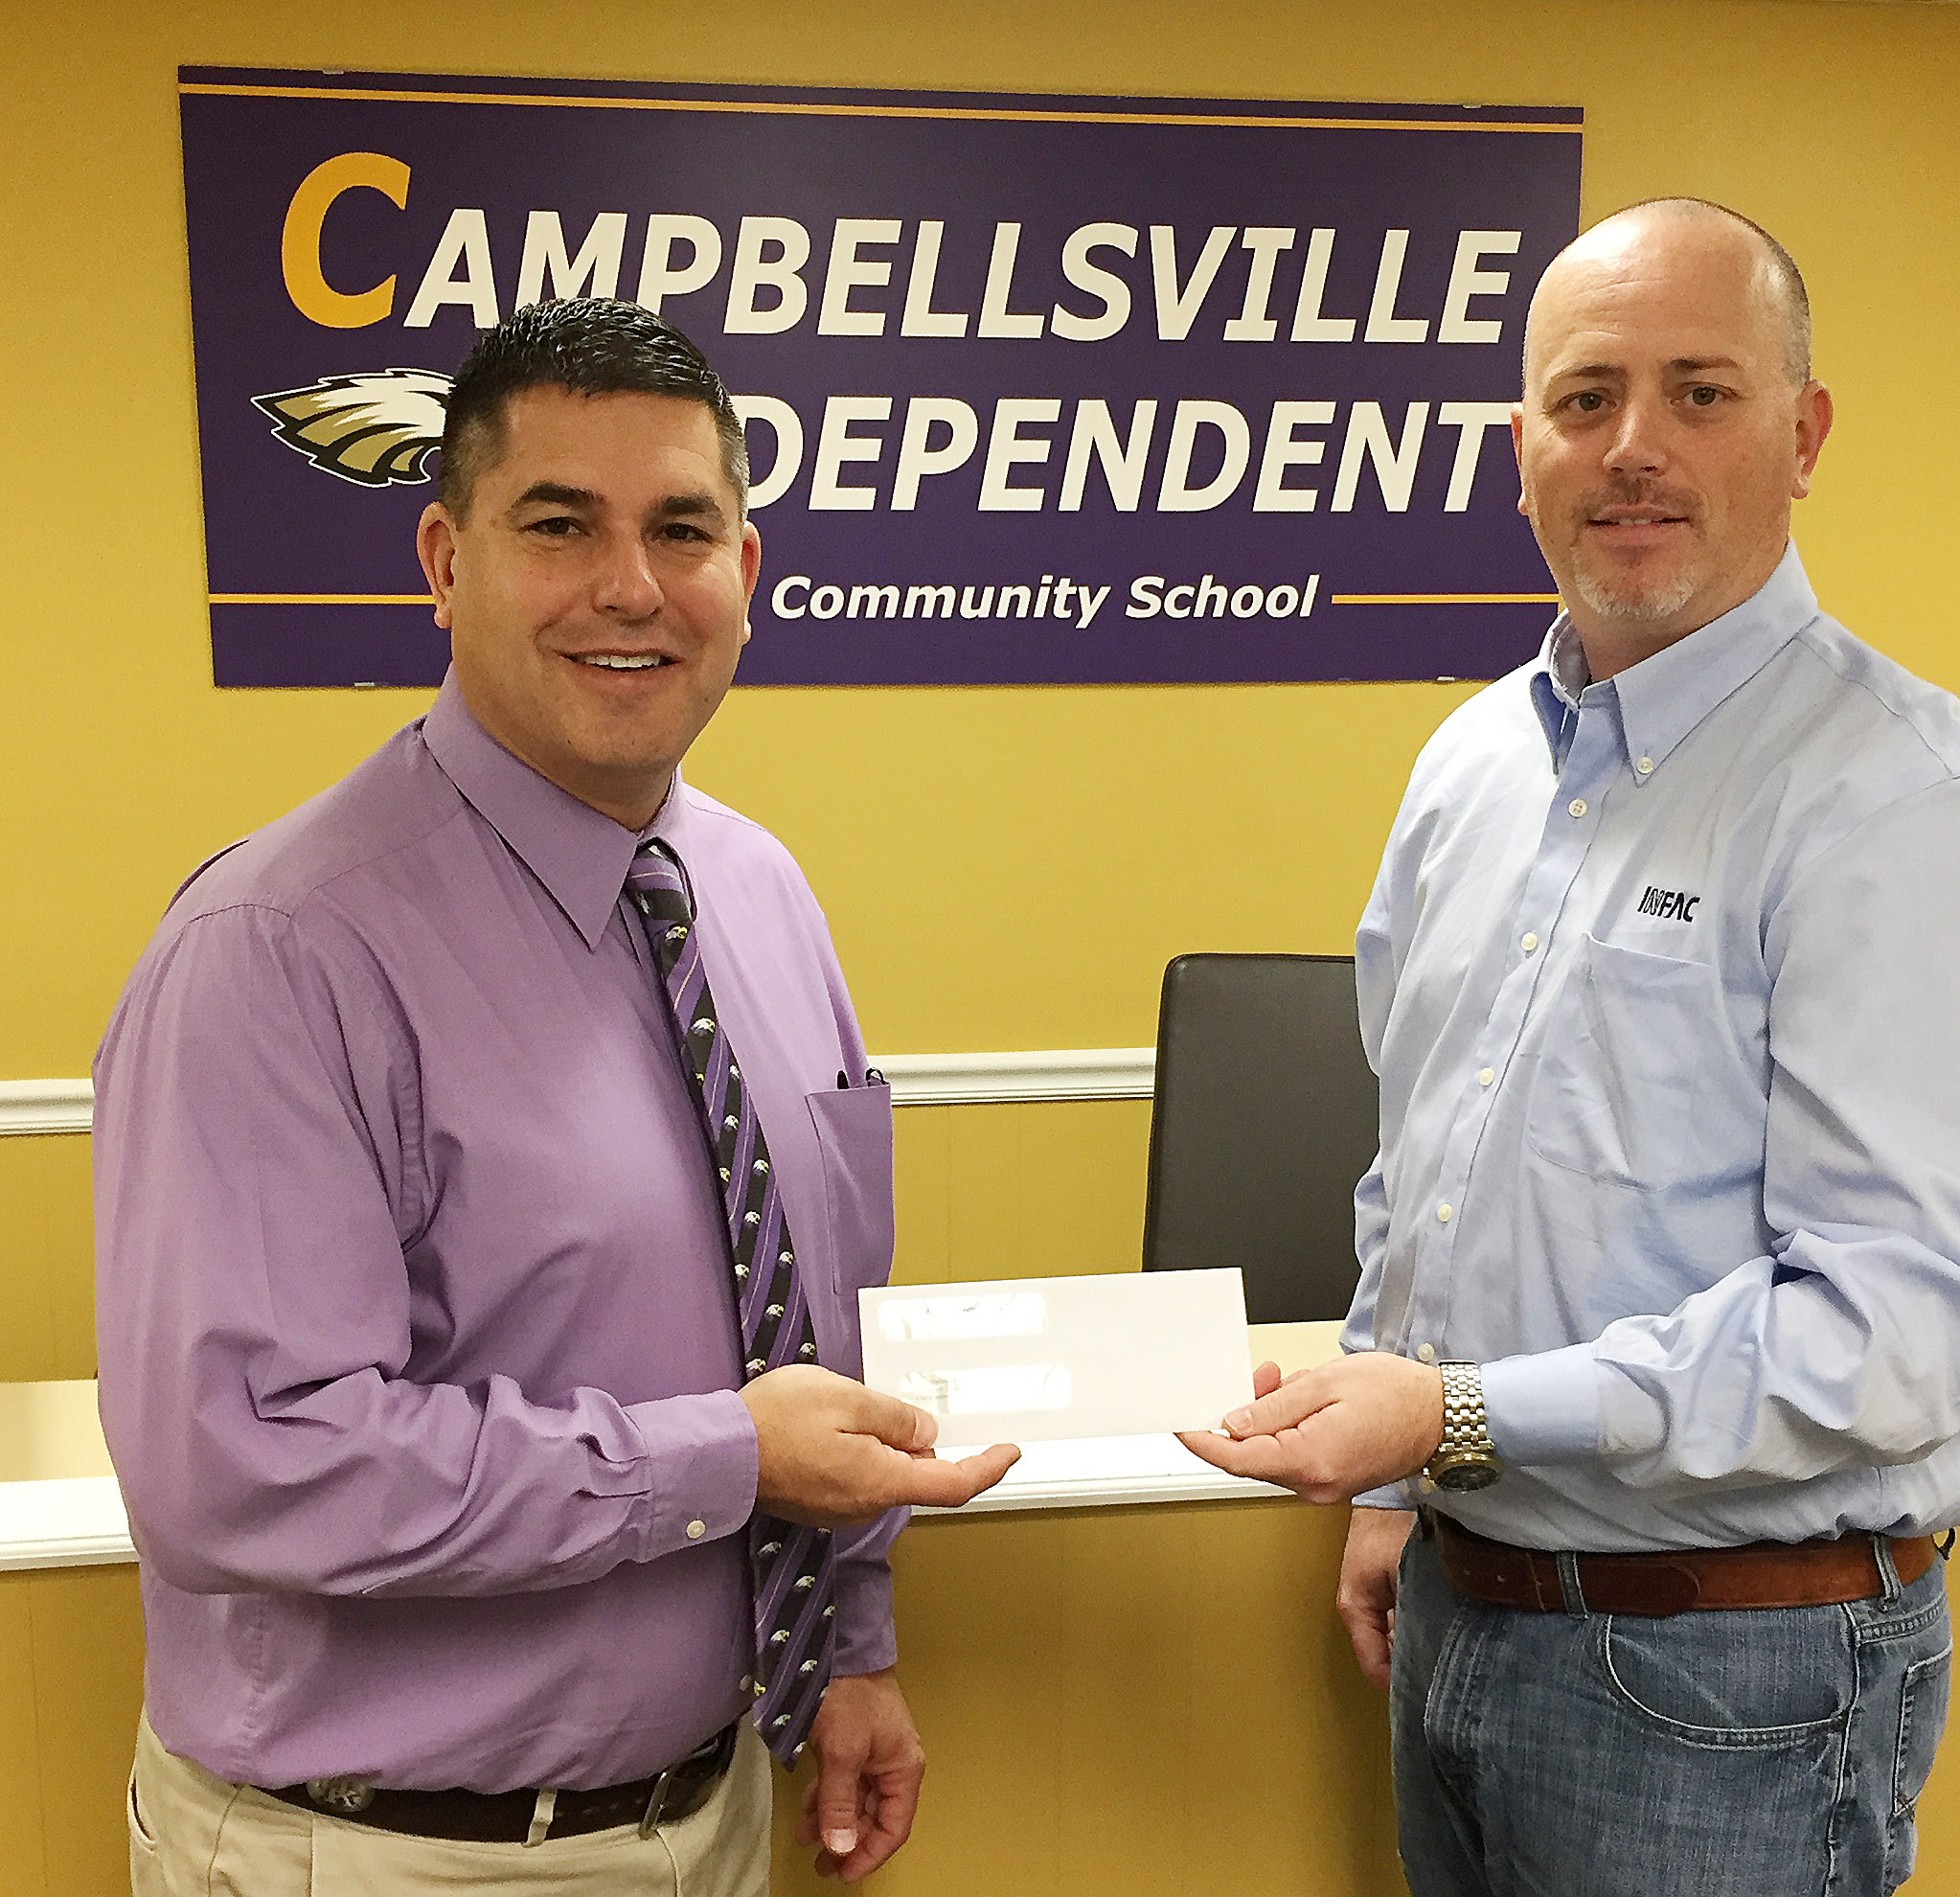 INFAC North America recently donated $2,000 to Campbellsville Independent Schools. Brian Bland, general manager, at right, made the presentation. Superintendent Kirby Smith, at left, accepted the donation on behalf of Campbellsville Independent Schools.